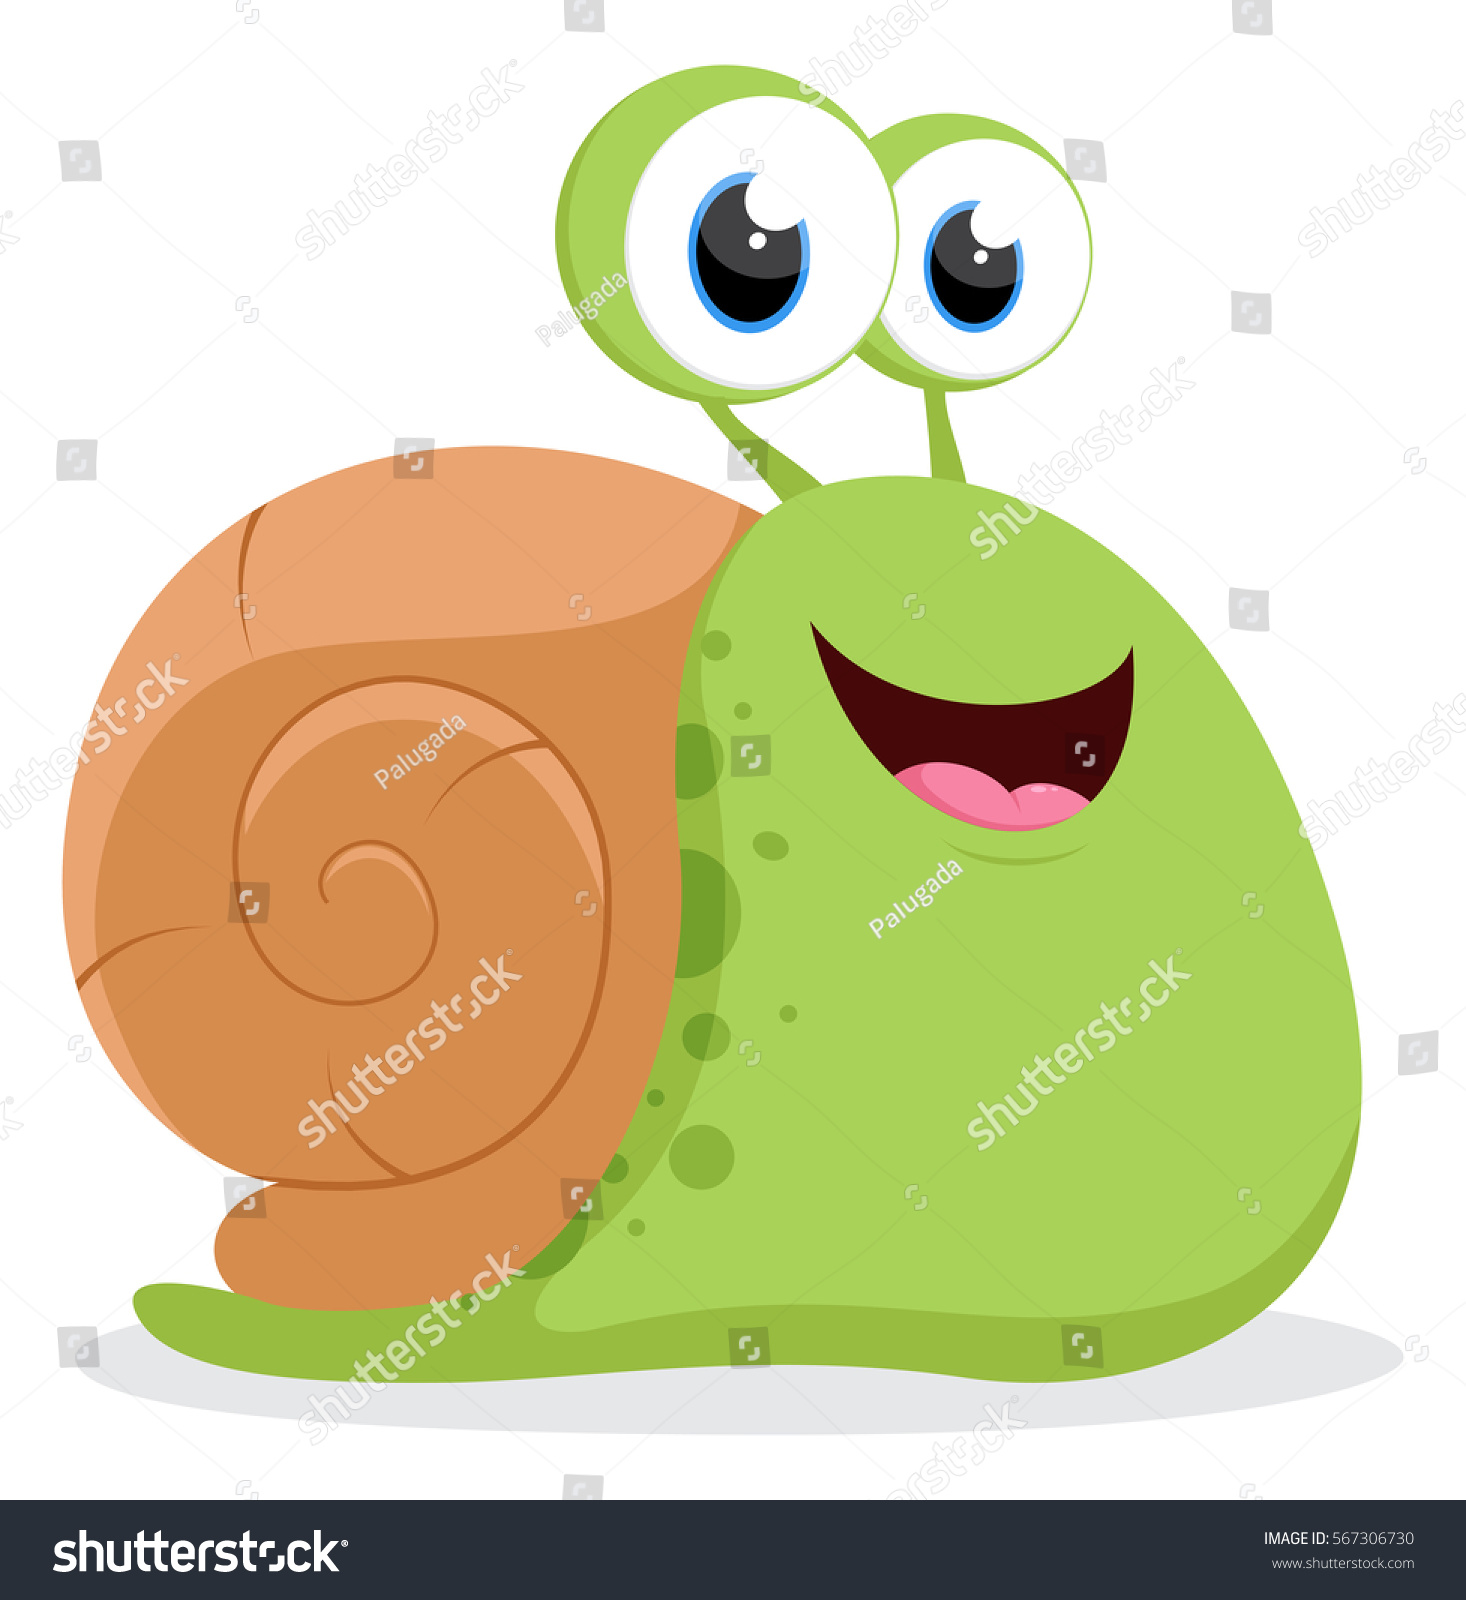 how to draw a cute snail